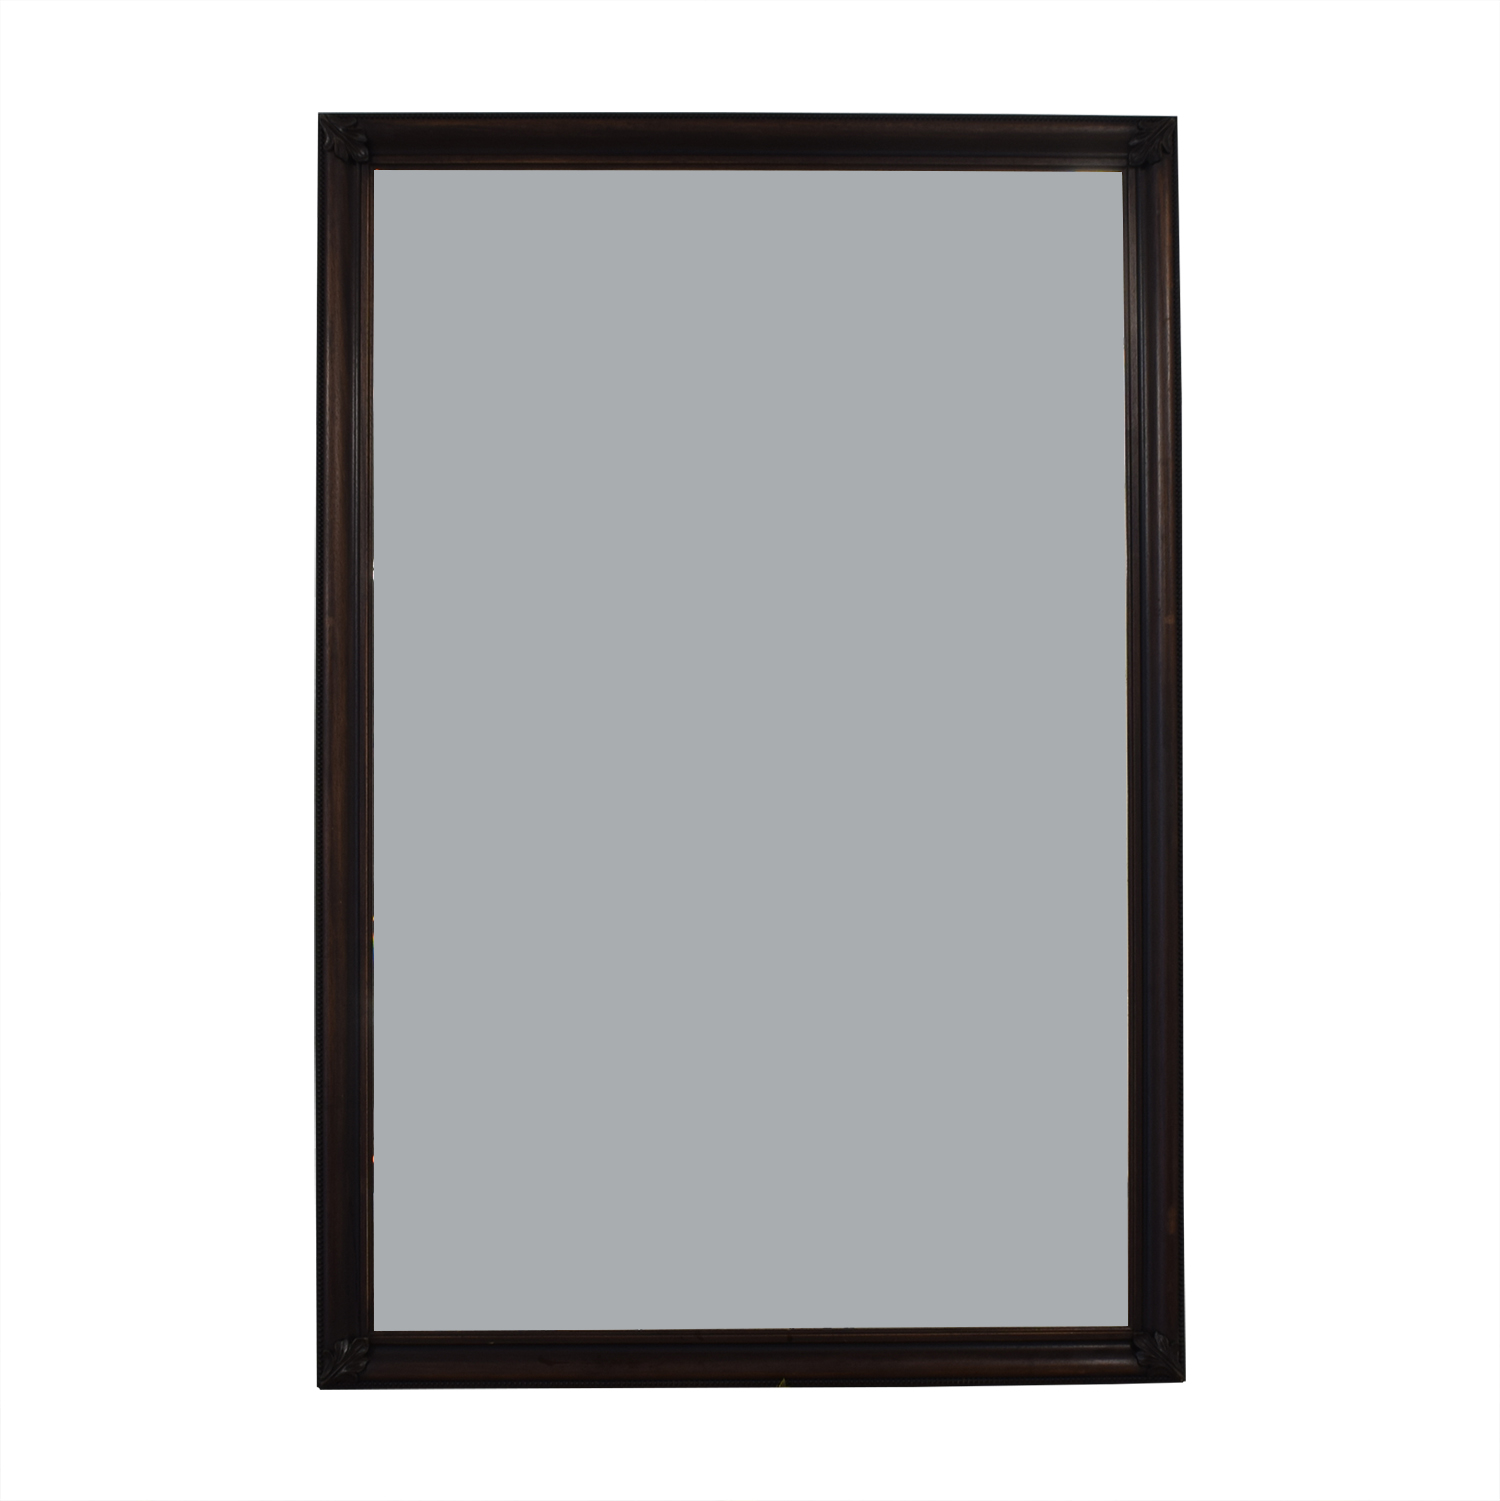 Pottery Barn Large Mirror / Decor